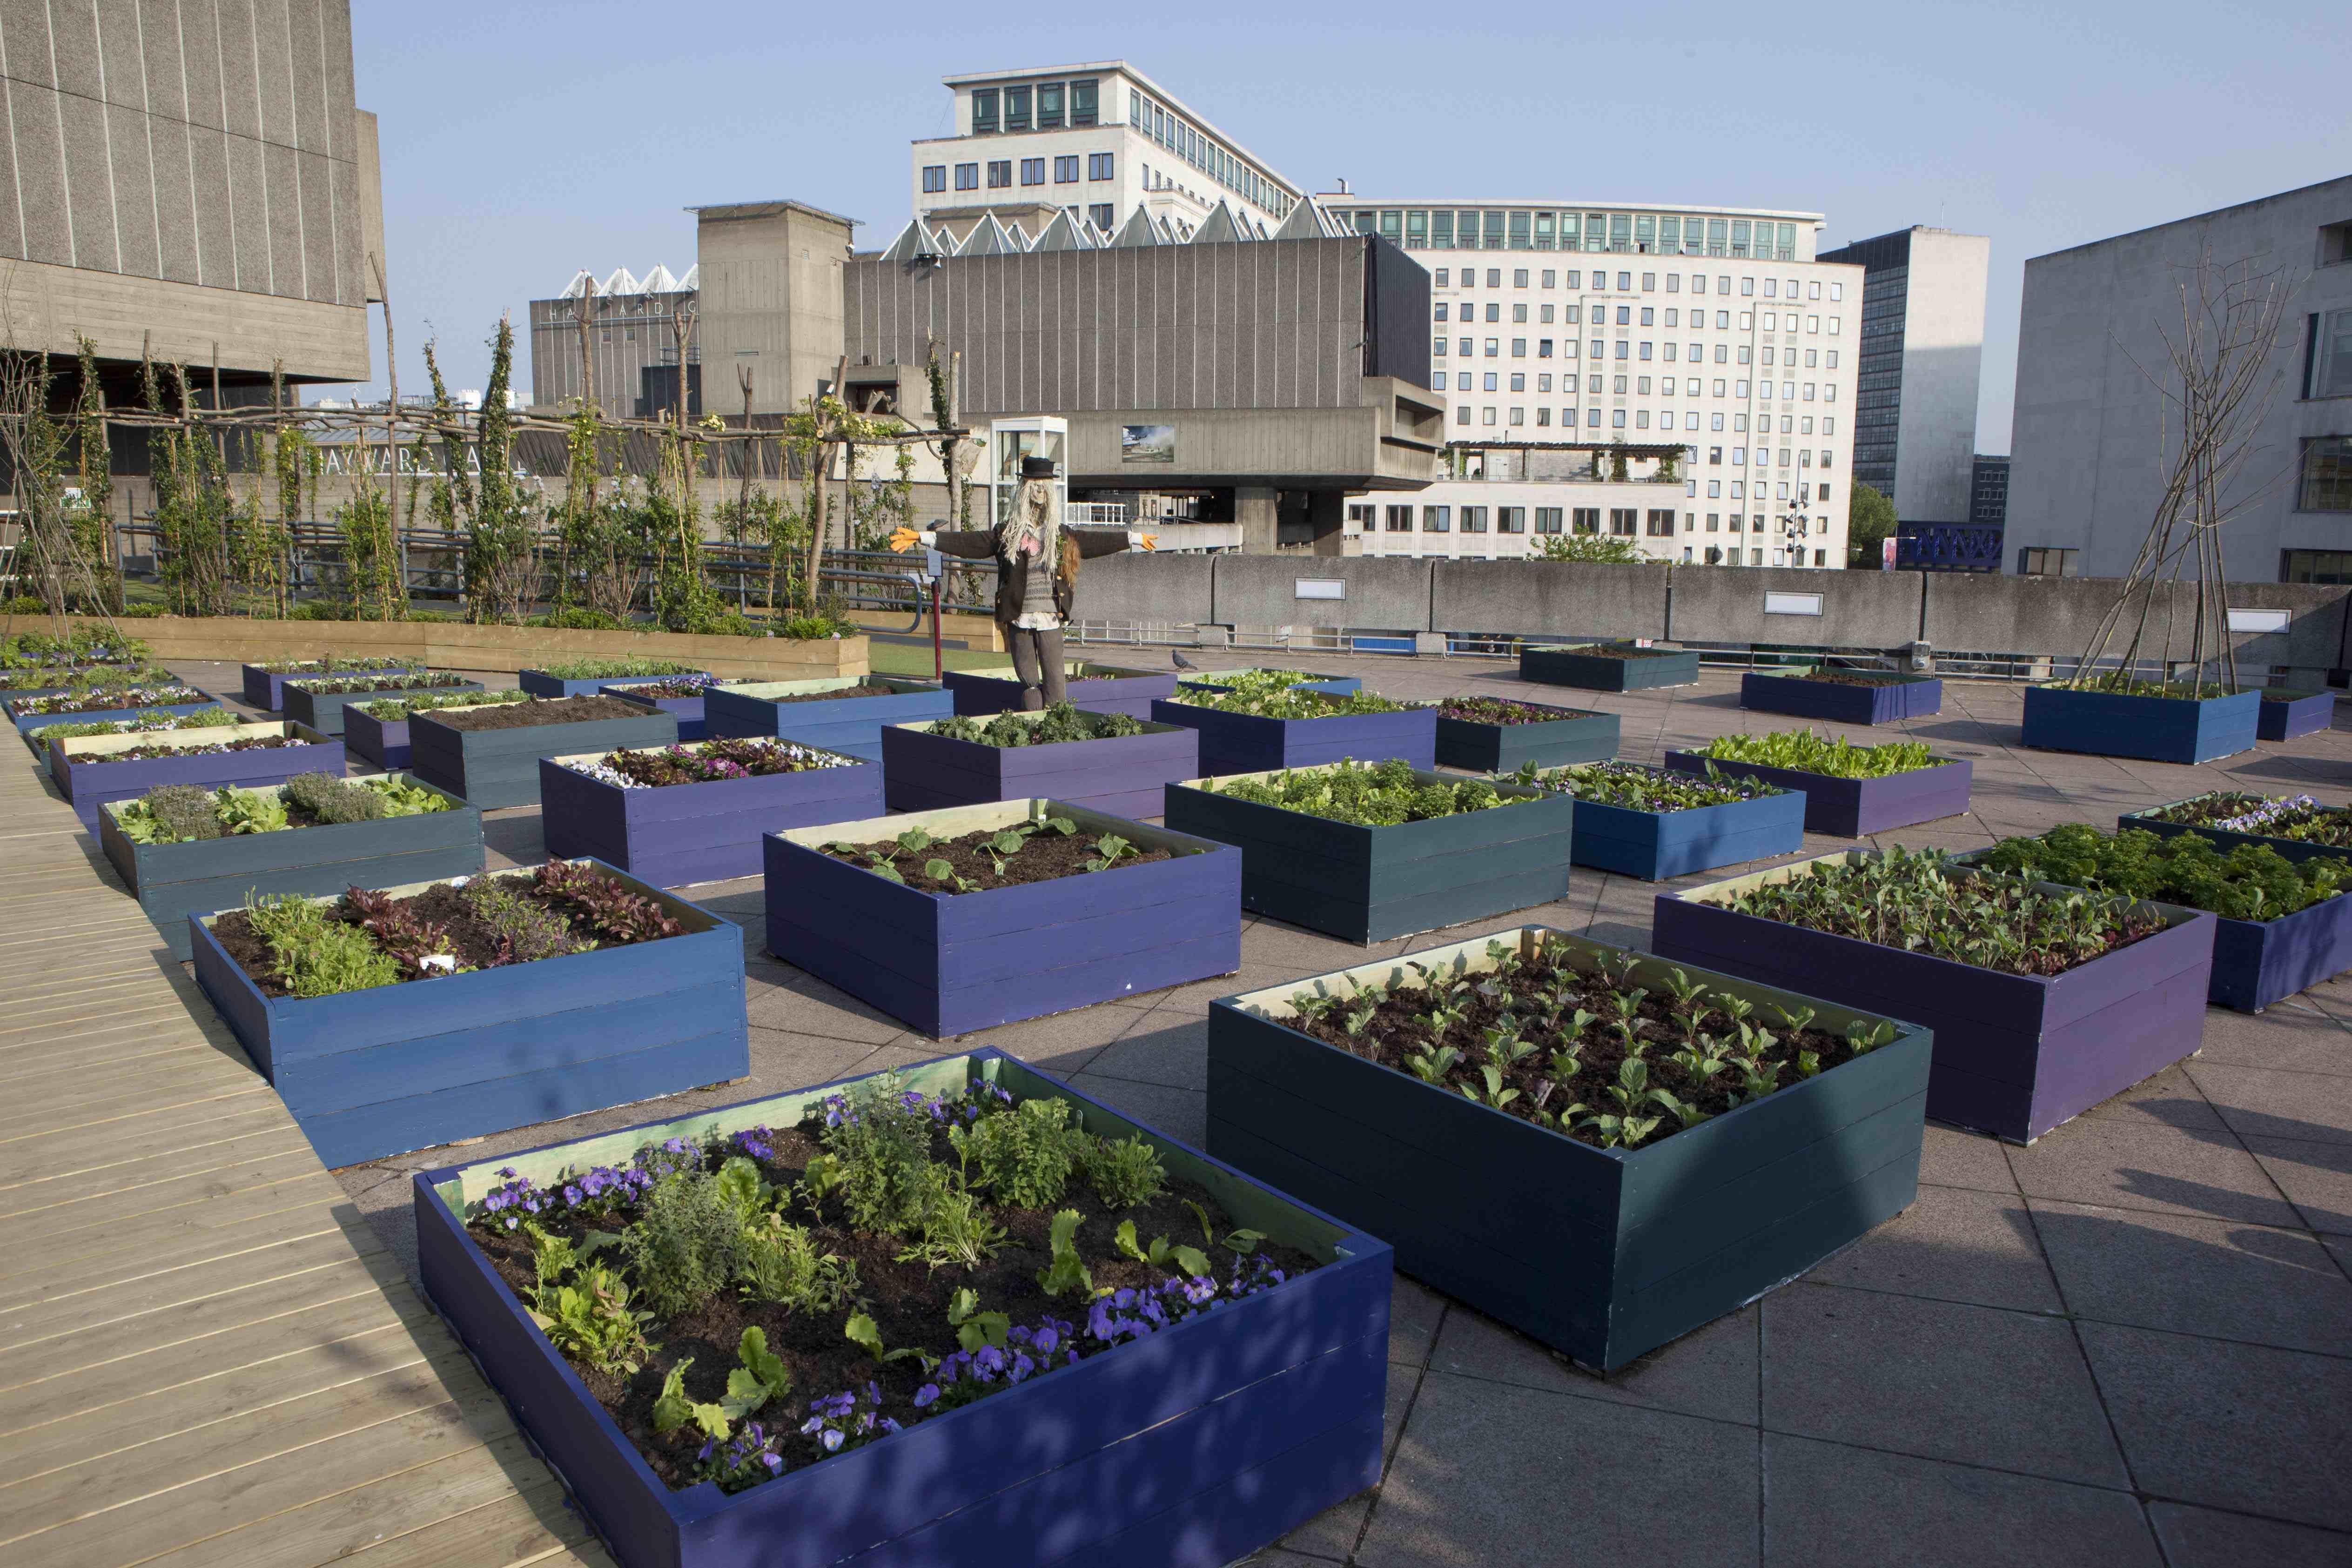 A Blue Wooden Raised Garden Bed Beautified With Various Green - Rooftop vegetable garden ideas